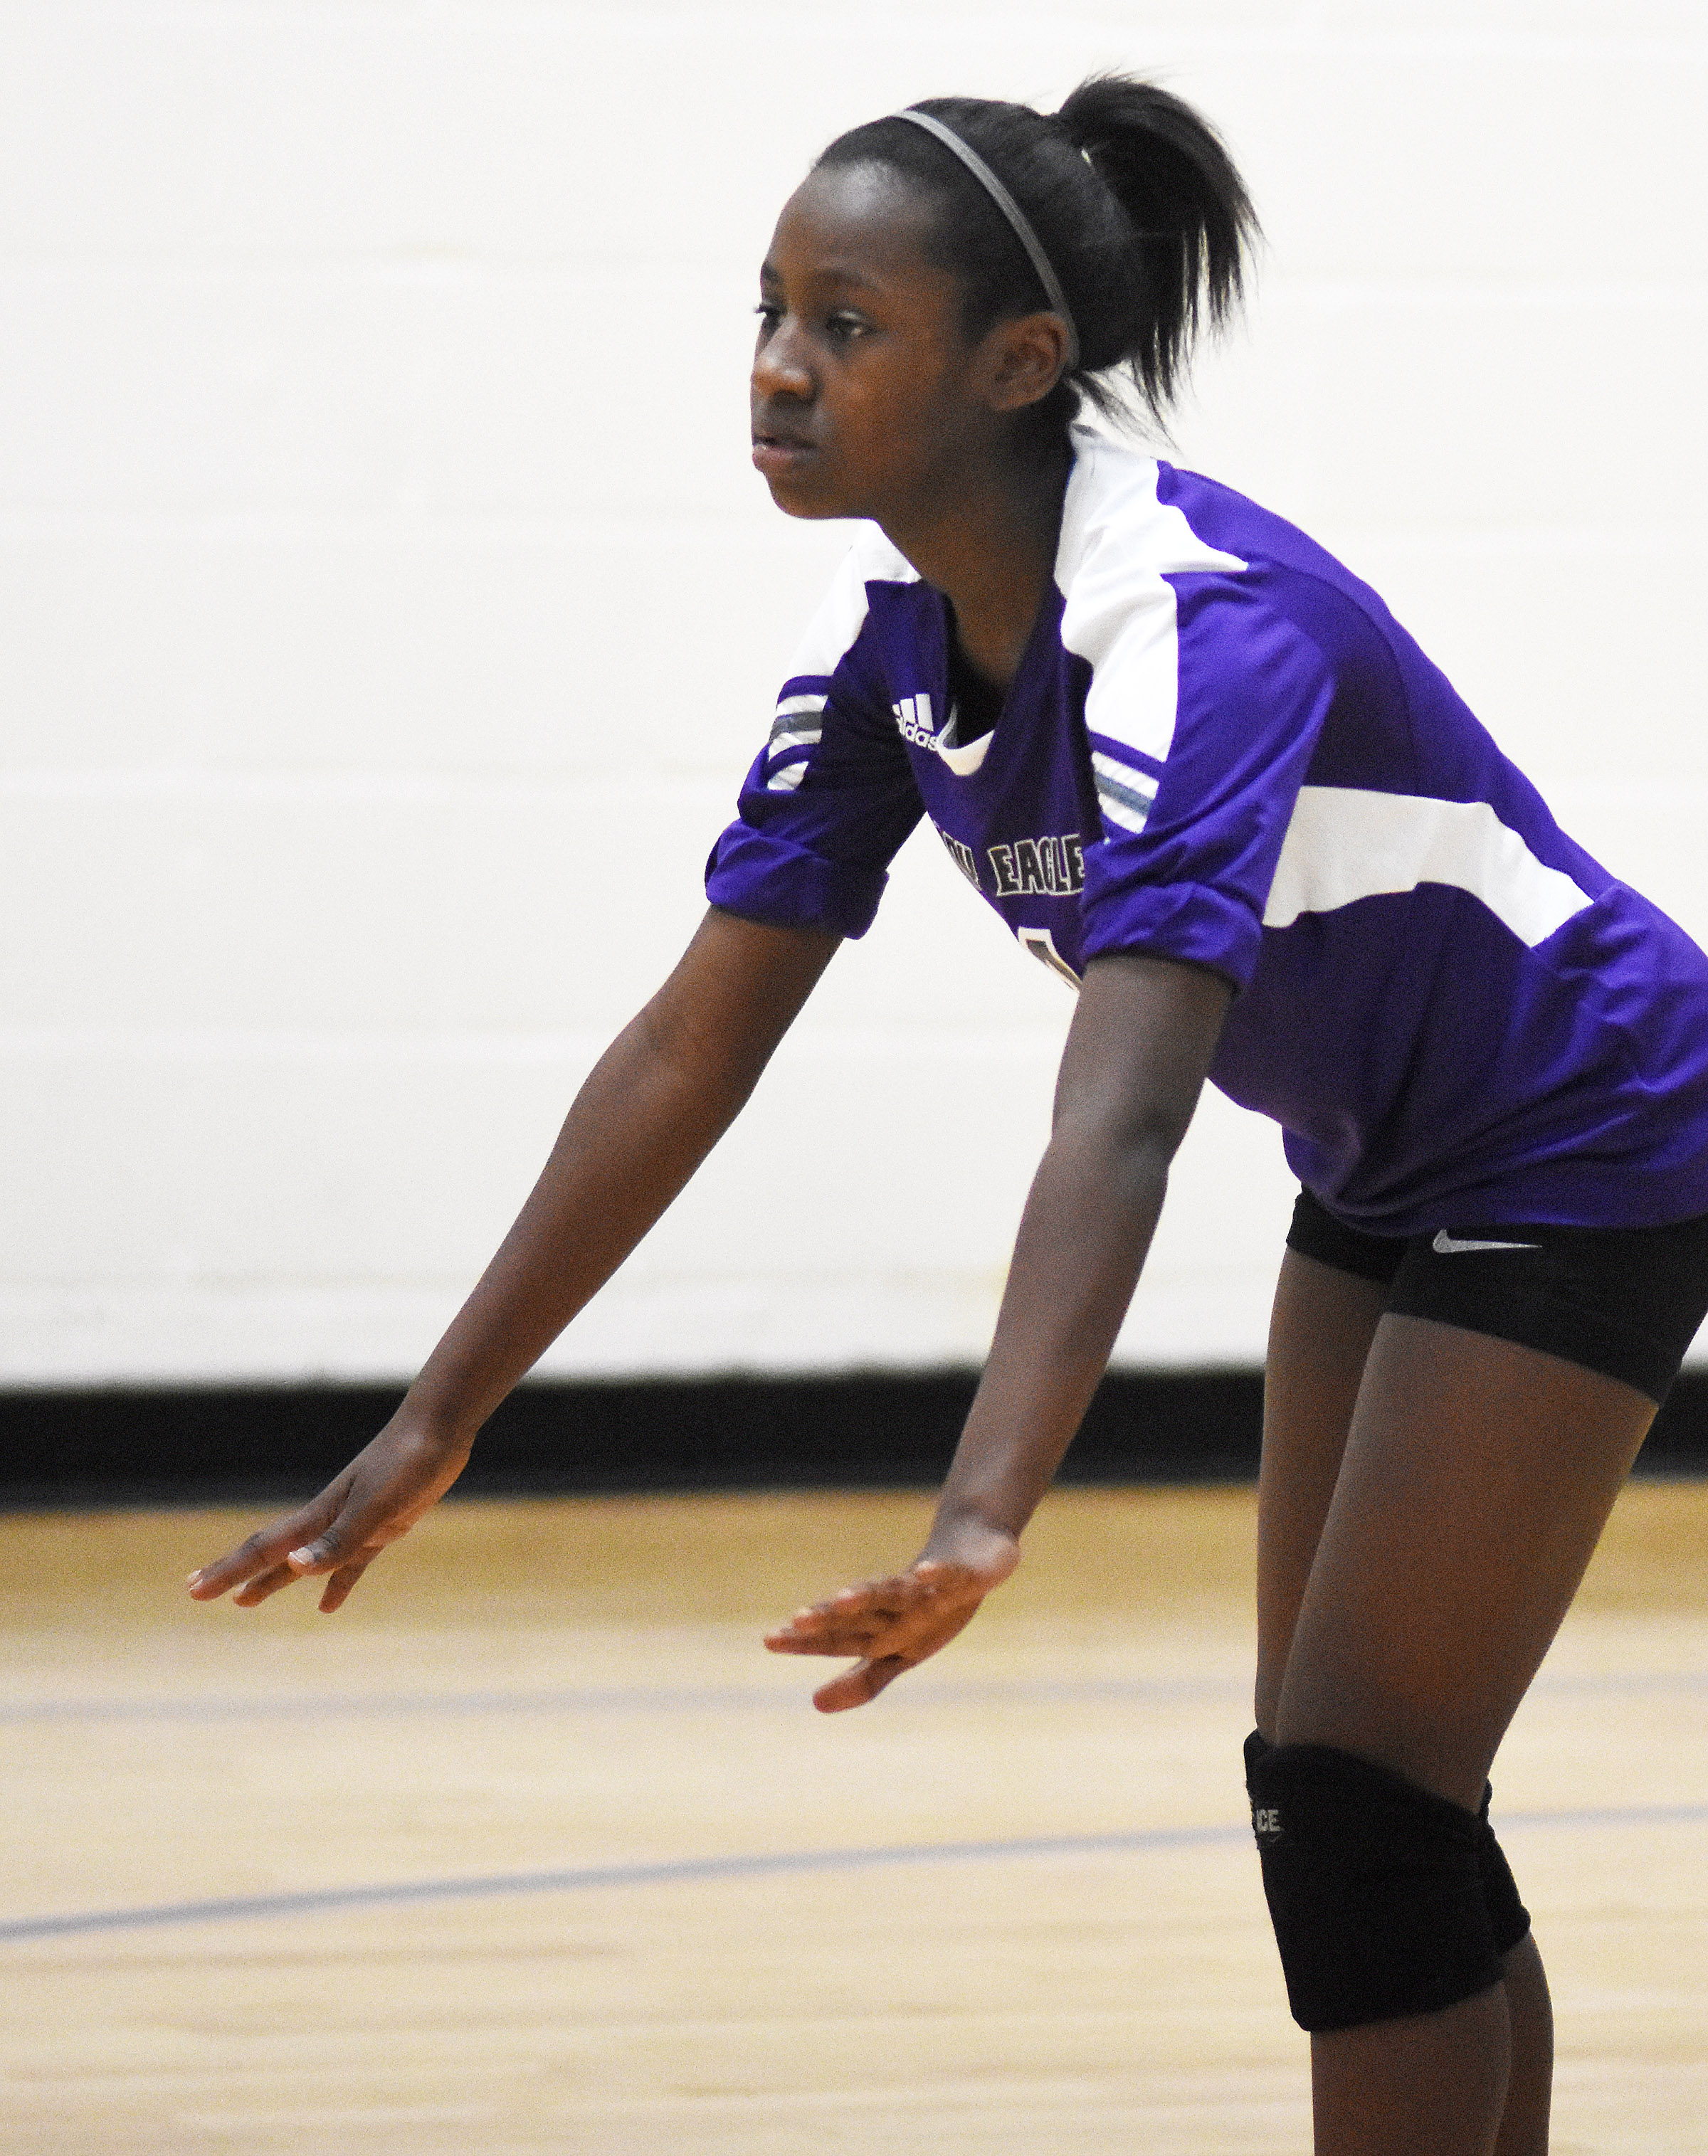 CMS eighth-grader Myricle Gholston gets ready for the serve.